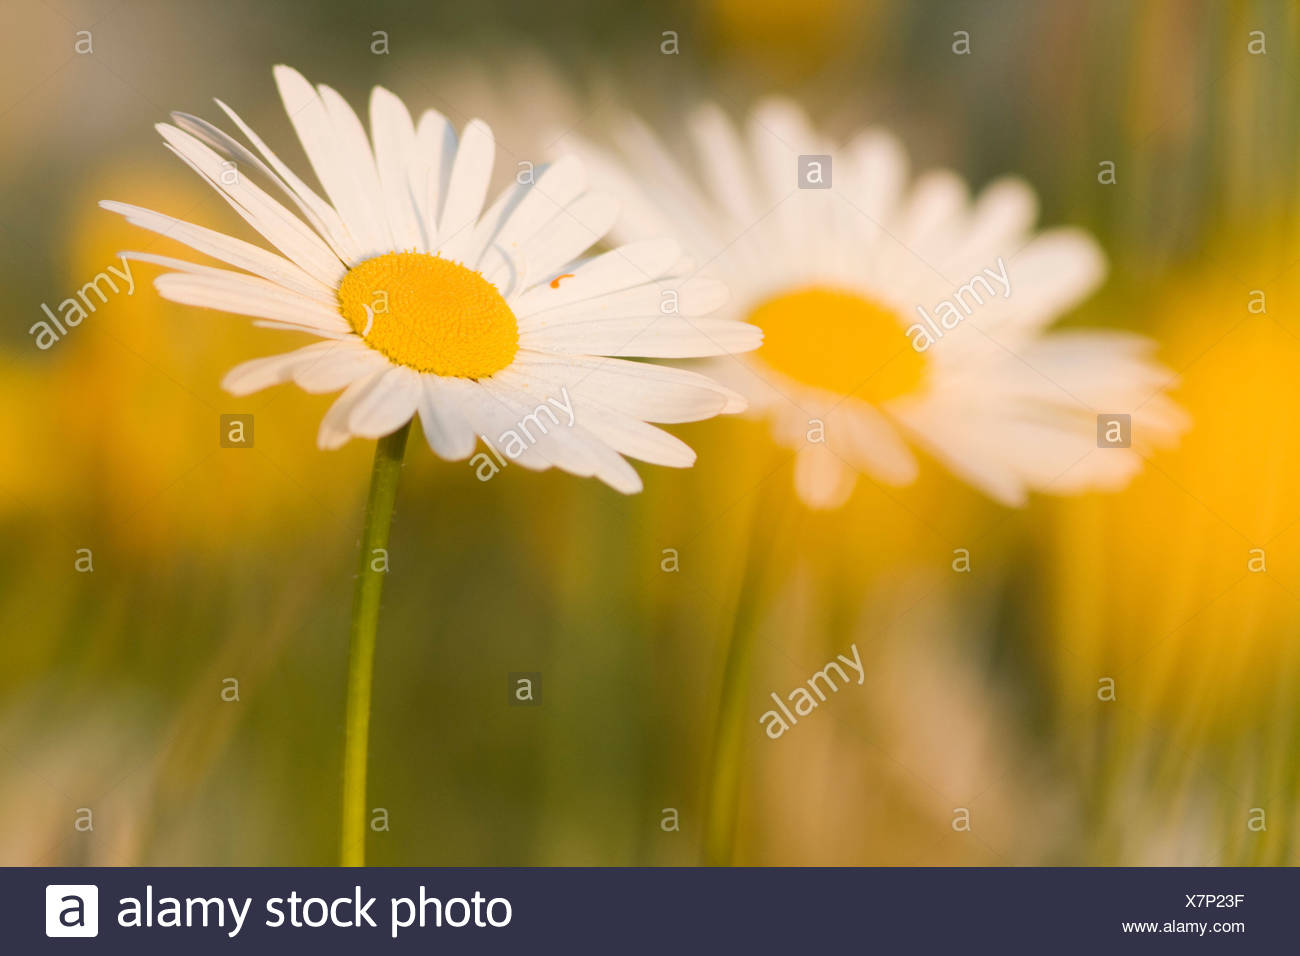 Parts flowers daisies stock photos parts flowers daisies stock daisies leucanthemum stock image izmirmasajfo